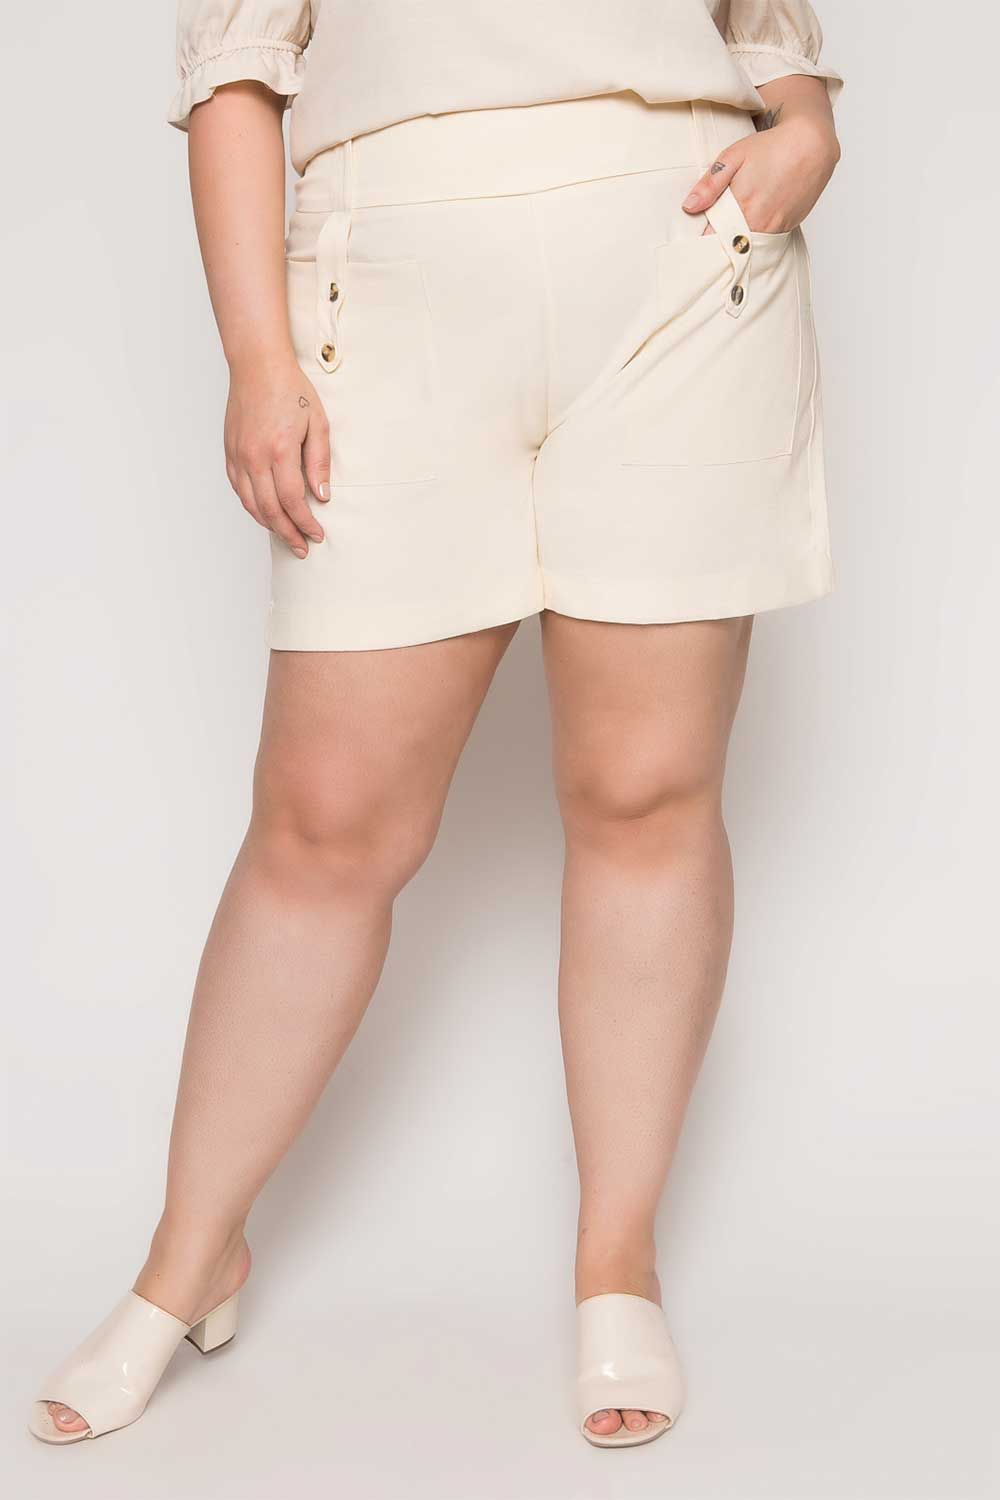 0058_Shorts_Plus_Size_Liso_OffWhite_2